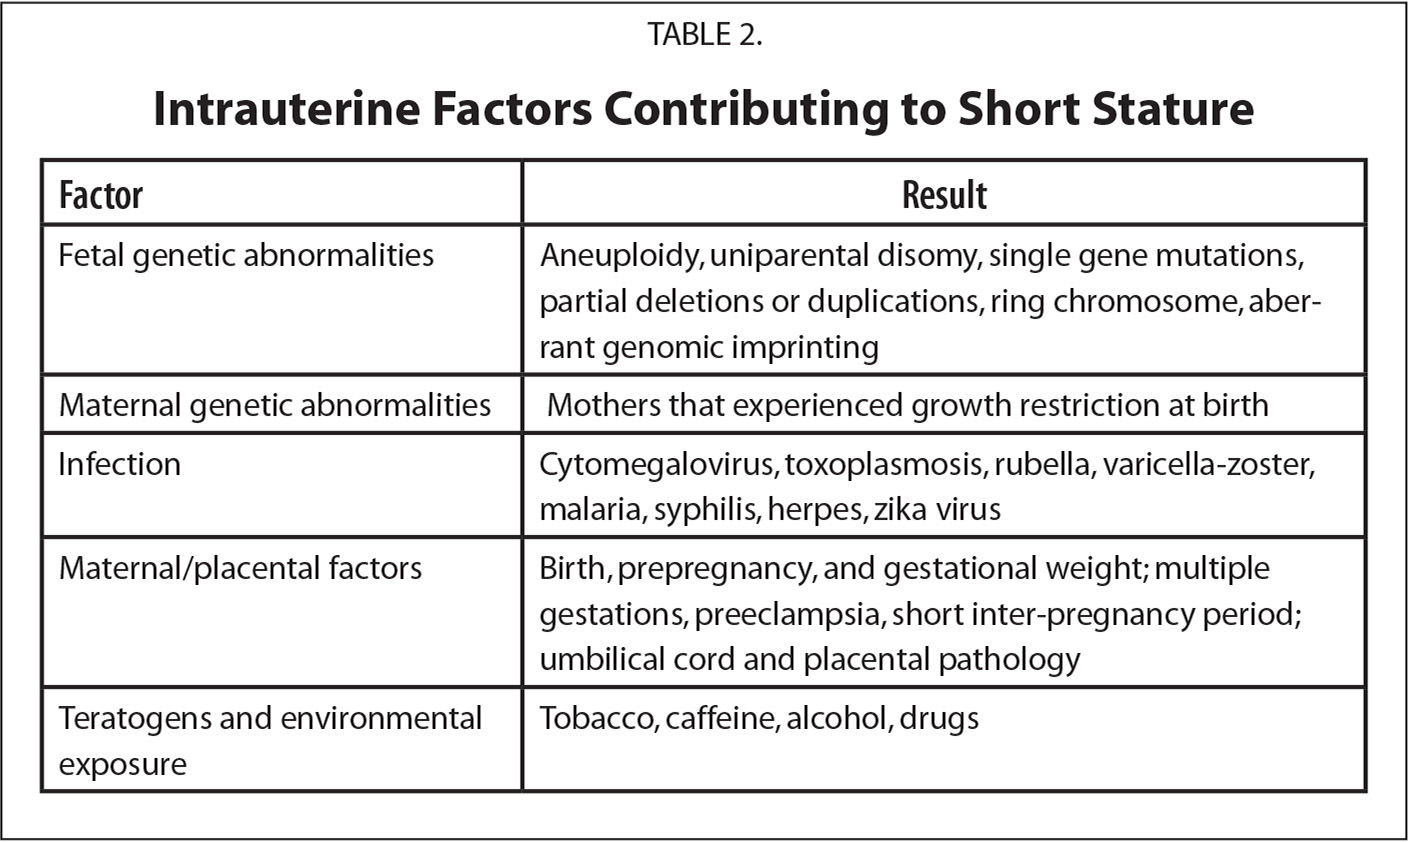 Intrauterine Factors Contributing to Short Stature